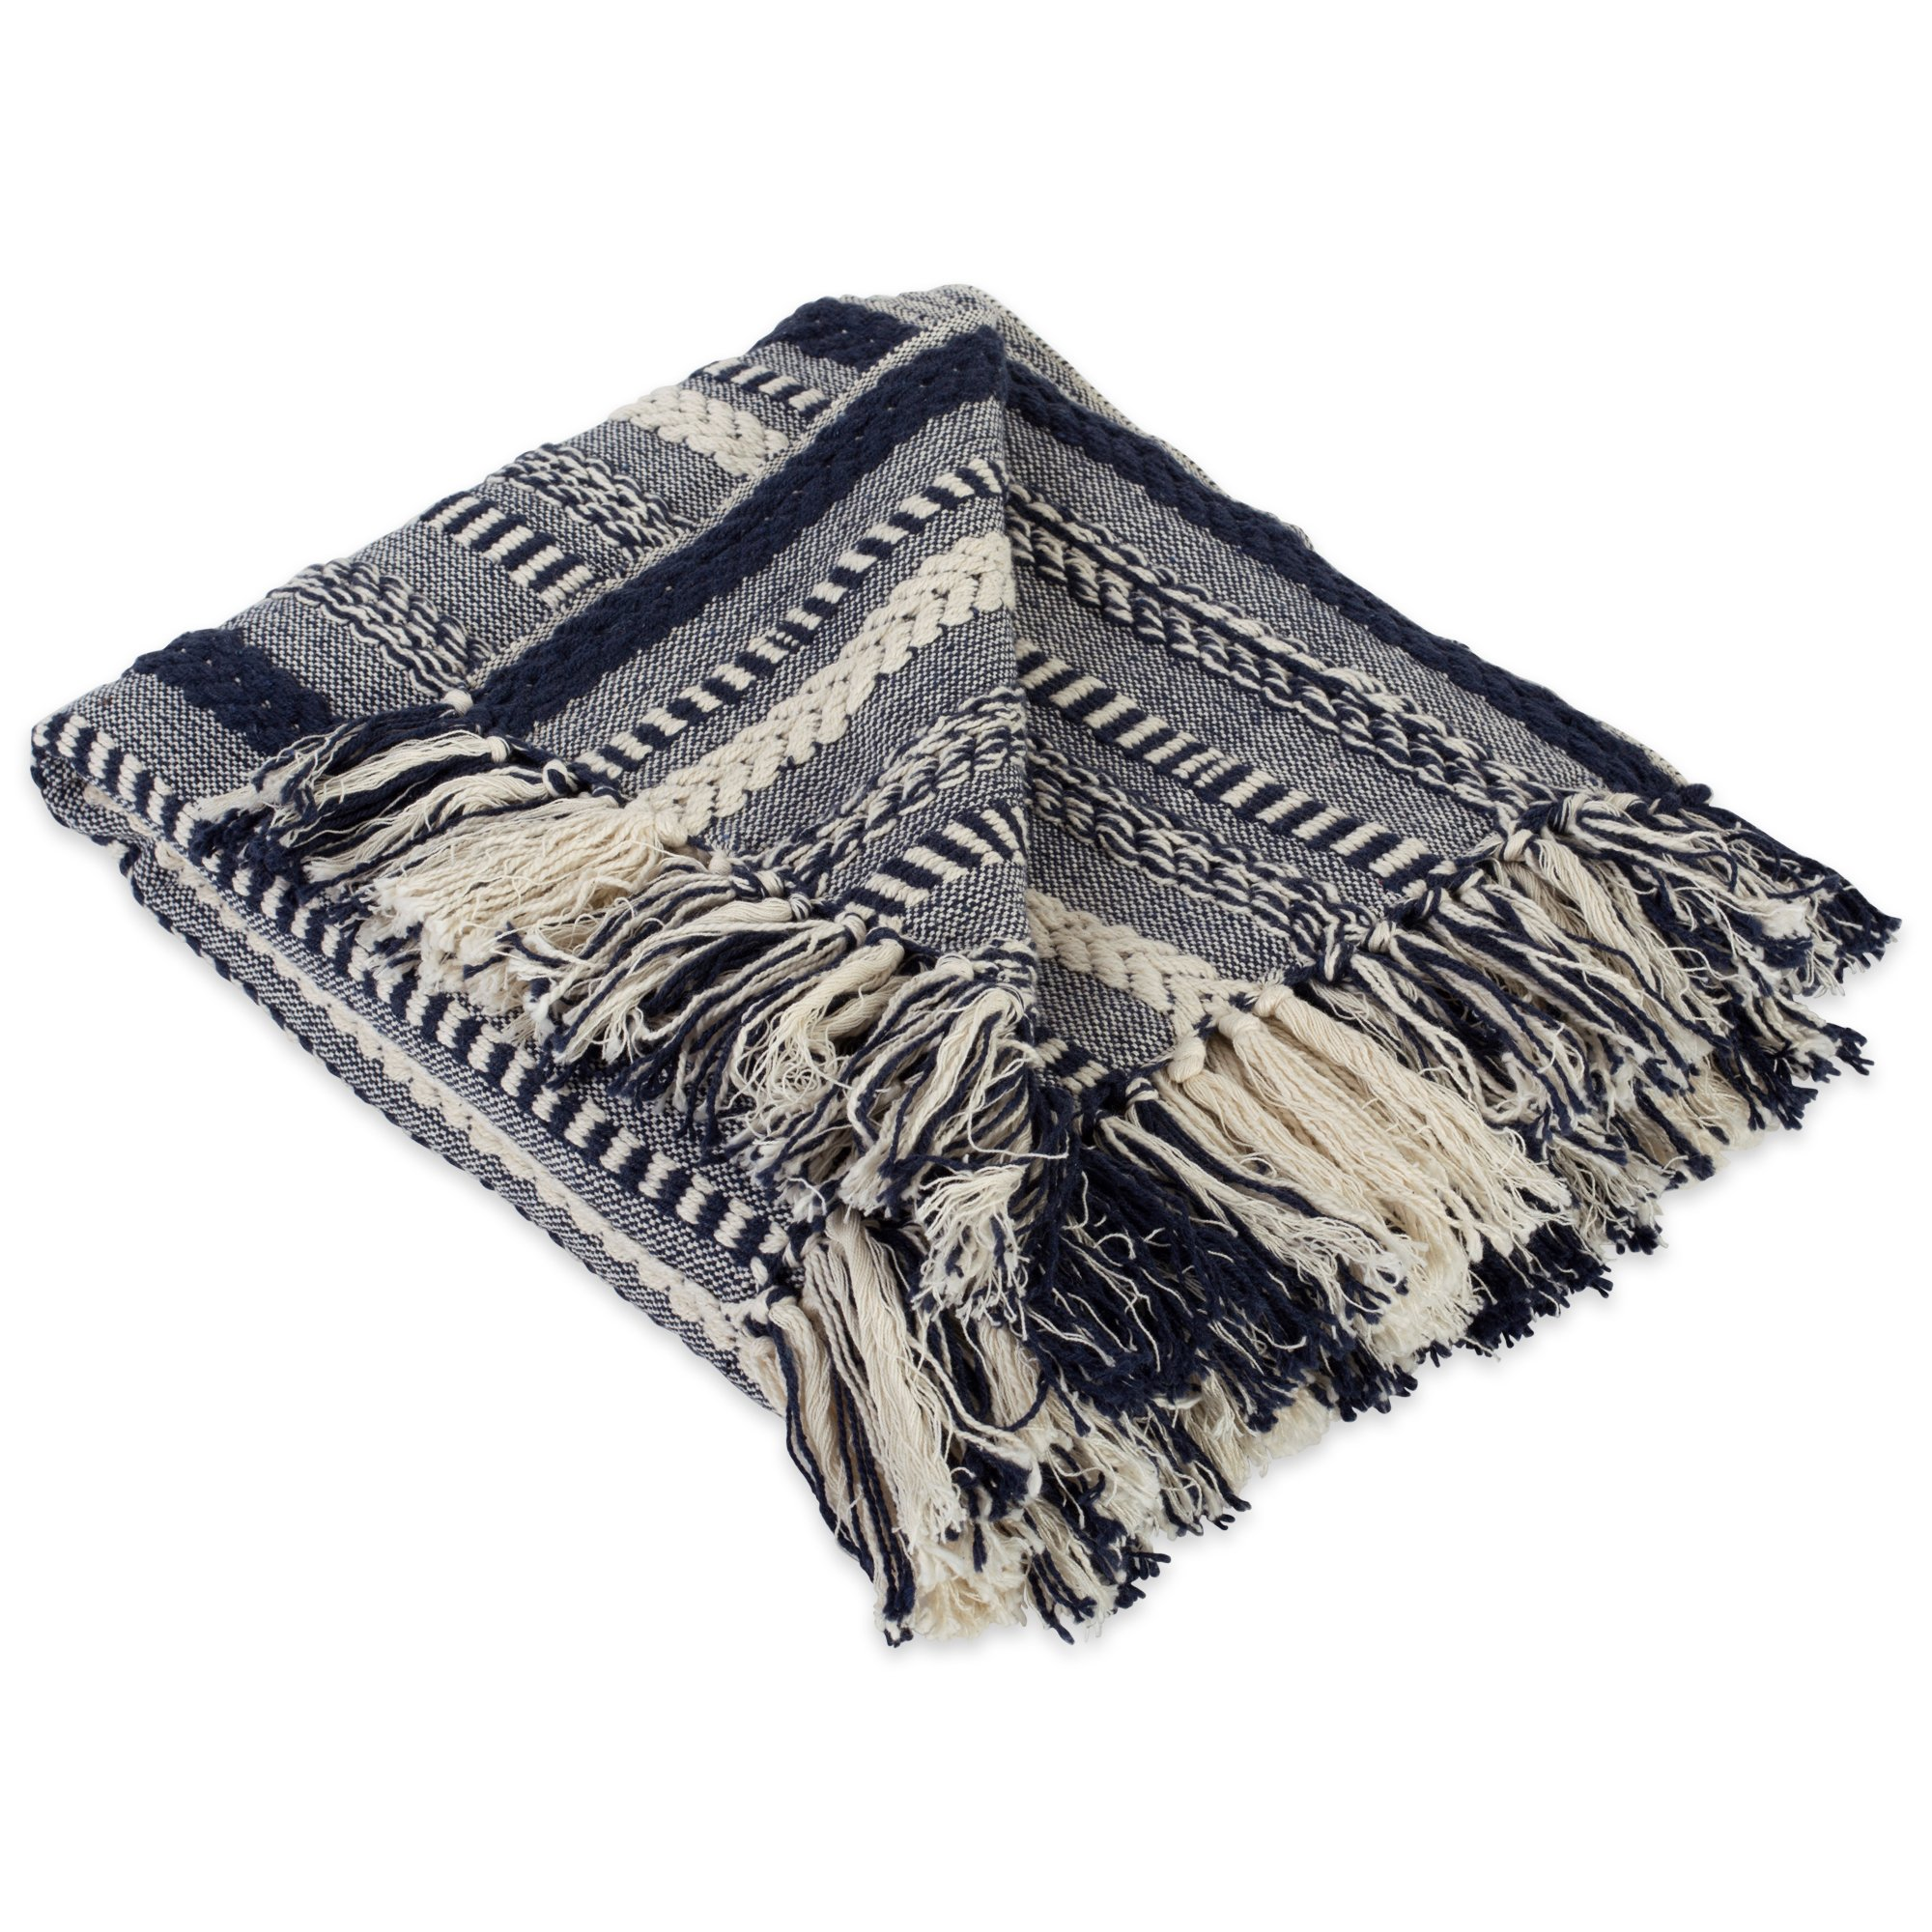 DII Farmhouse Cotton Stripe Blanket Throw with Fringe For Chair, Couch, Picnic, Camping, Beach, Everyday Use, 50 x 60 - Braided Stripe Navy